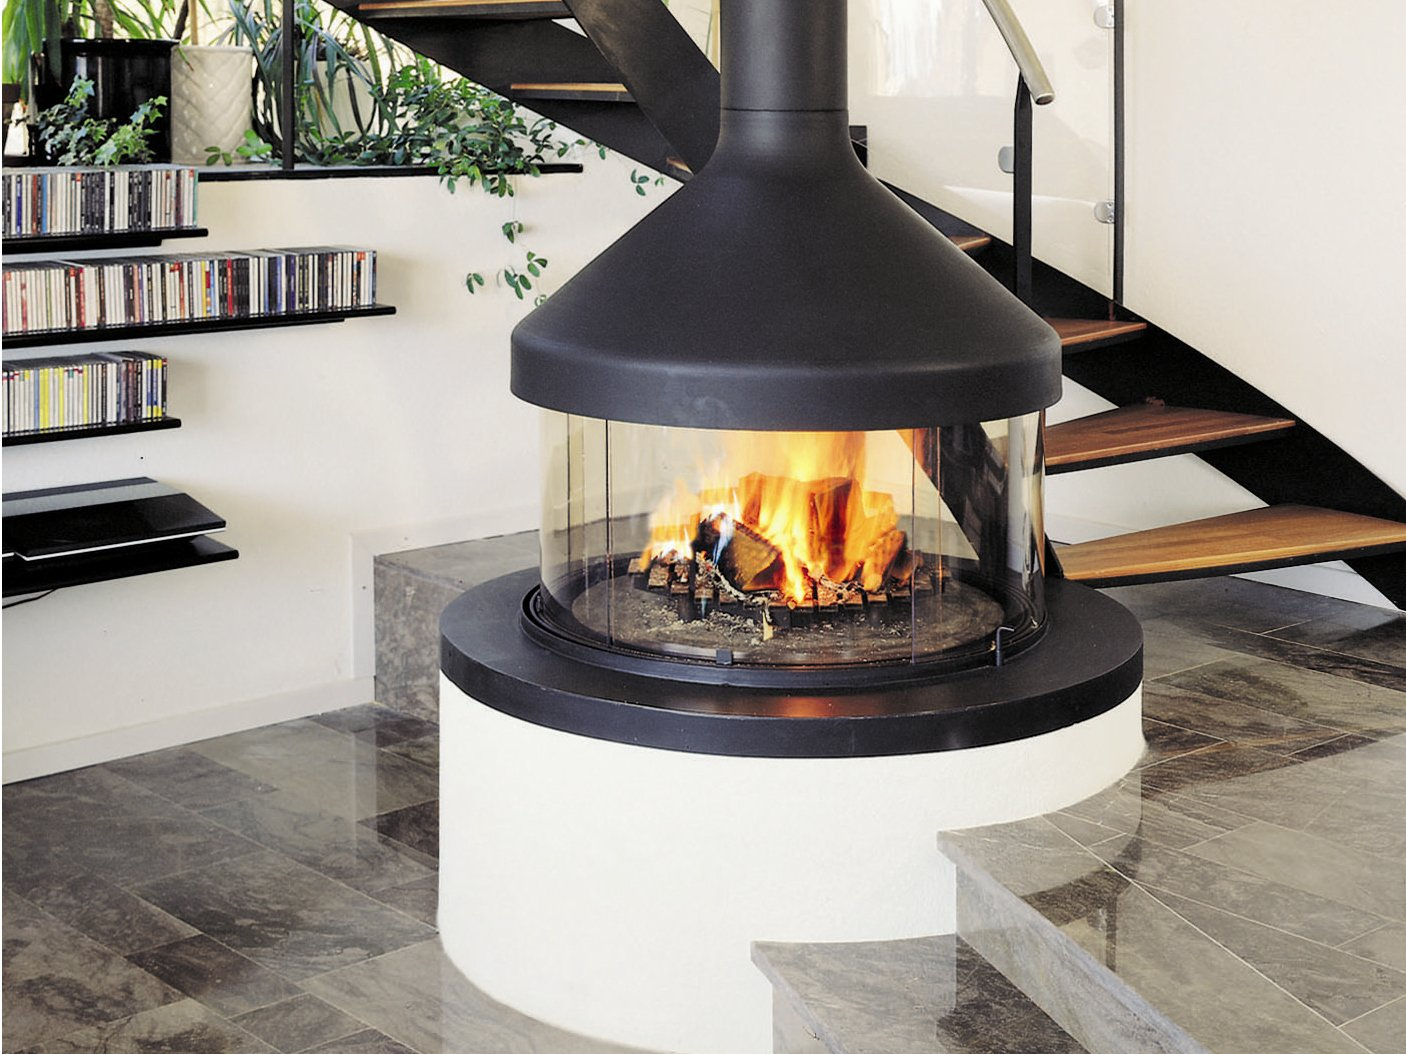 Central Fireplace With Panoramic Glass Meijifocus By Focus